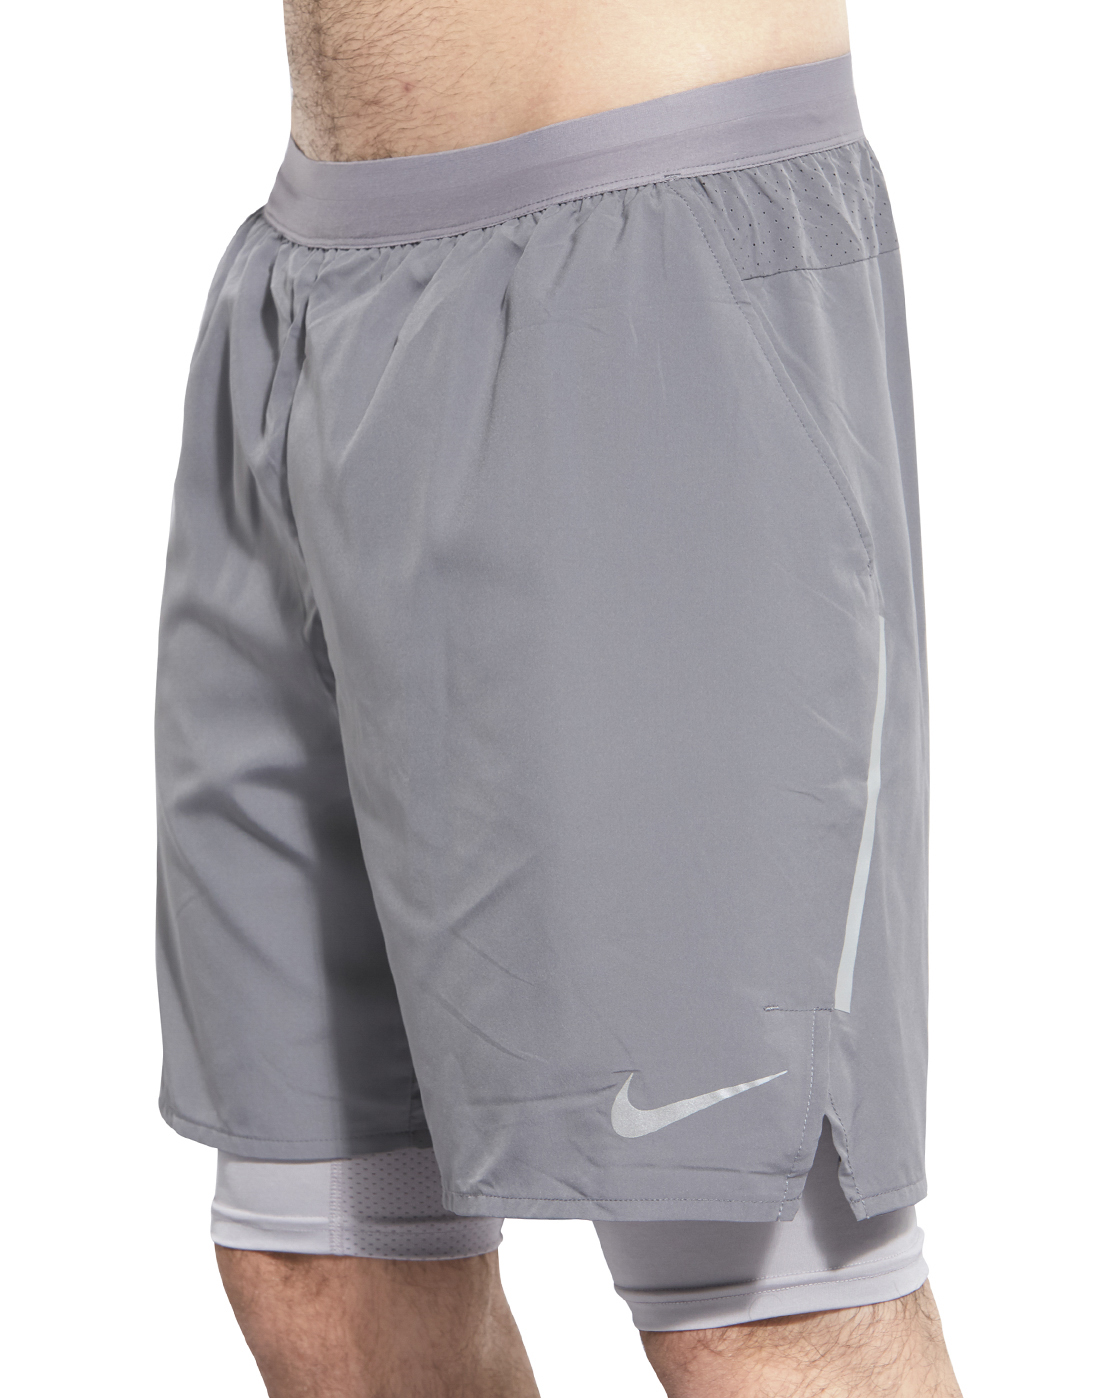 Men's Grey Nike 2 In 1 Running Shorts | Life Style Sports